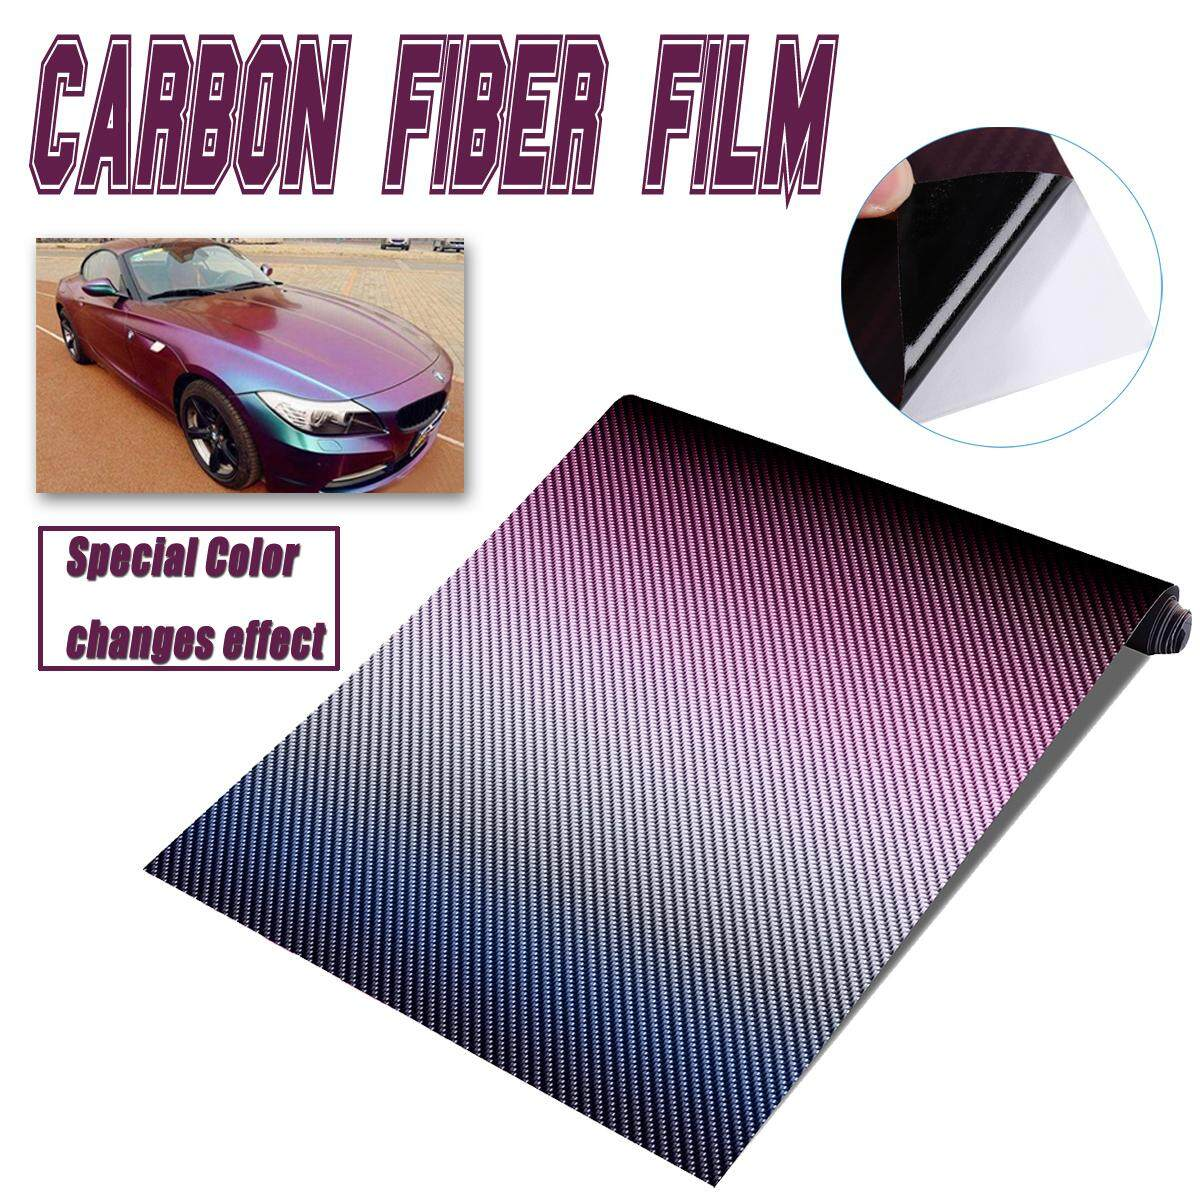 3d Carbon Fiber Vinyl Car Wrap Sheet Roll Film Sticker Decal 30cmx152cm By Audew.